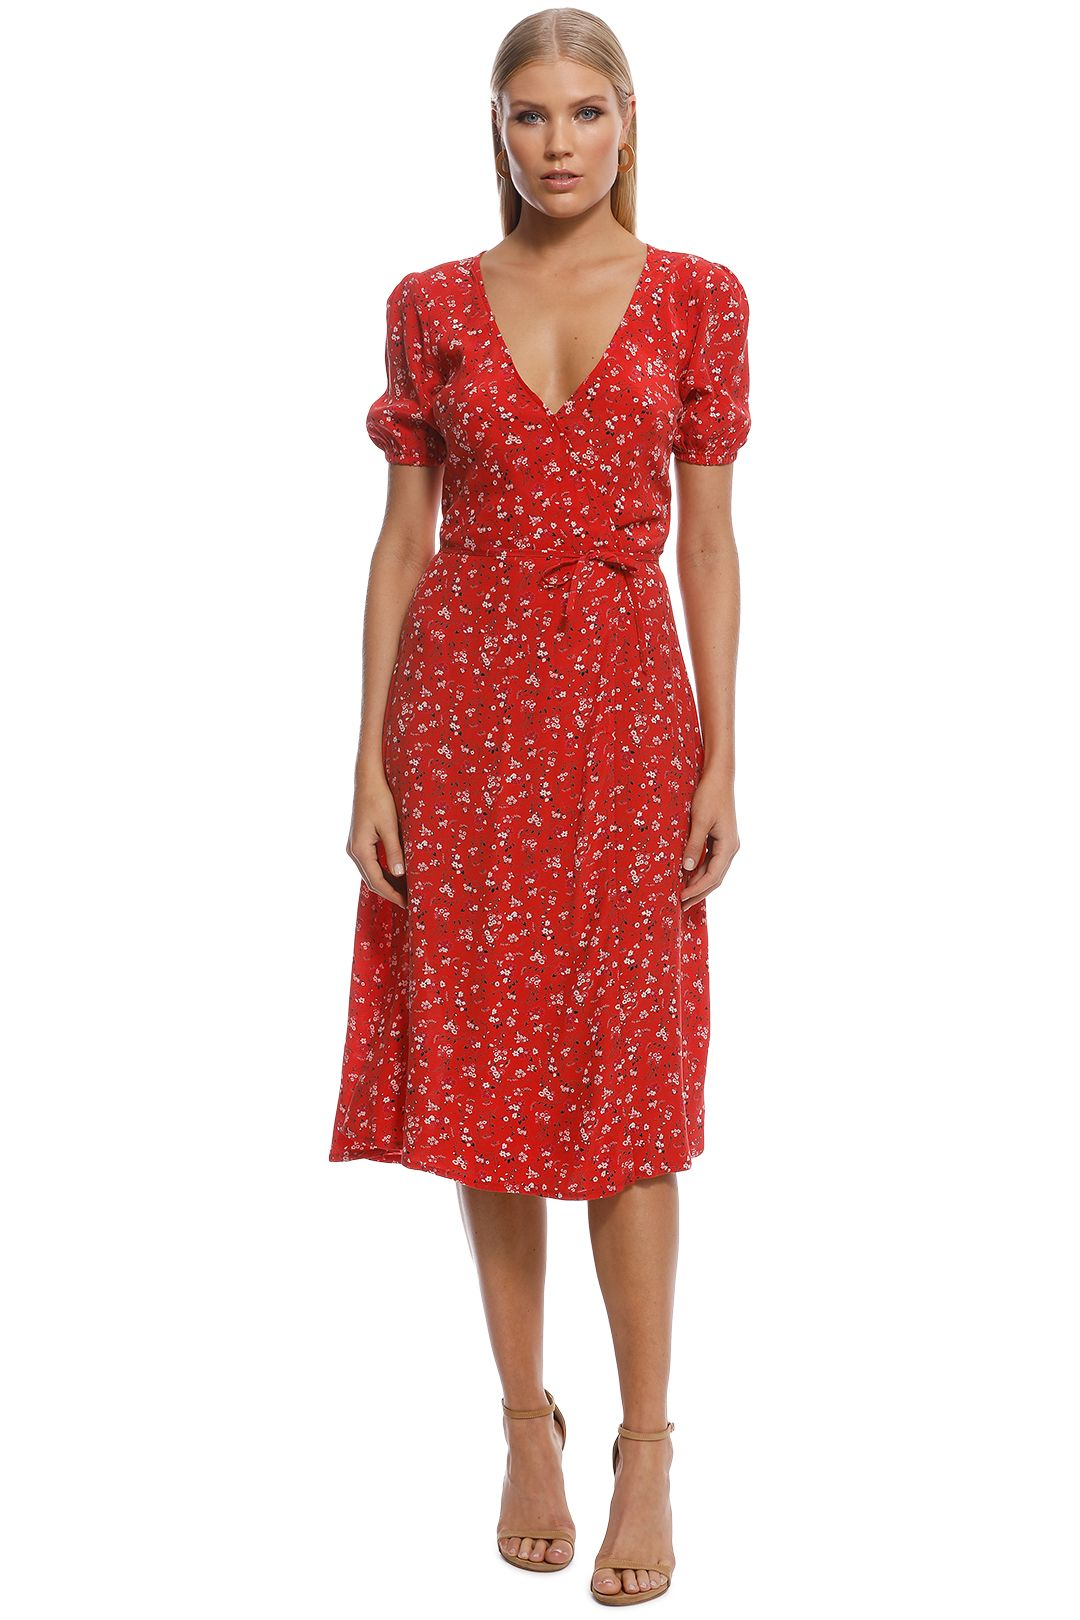 Kookai - Zariah Dress - Red - Front